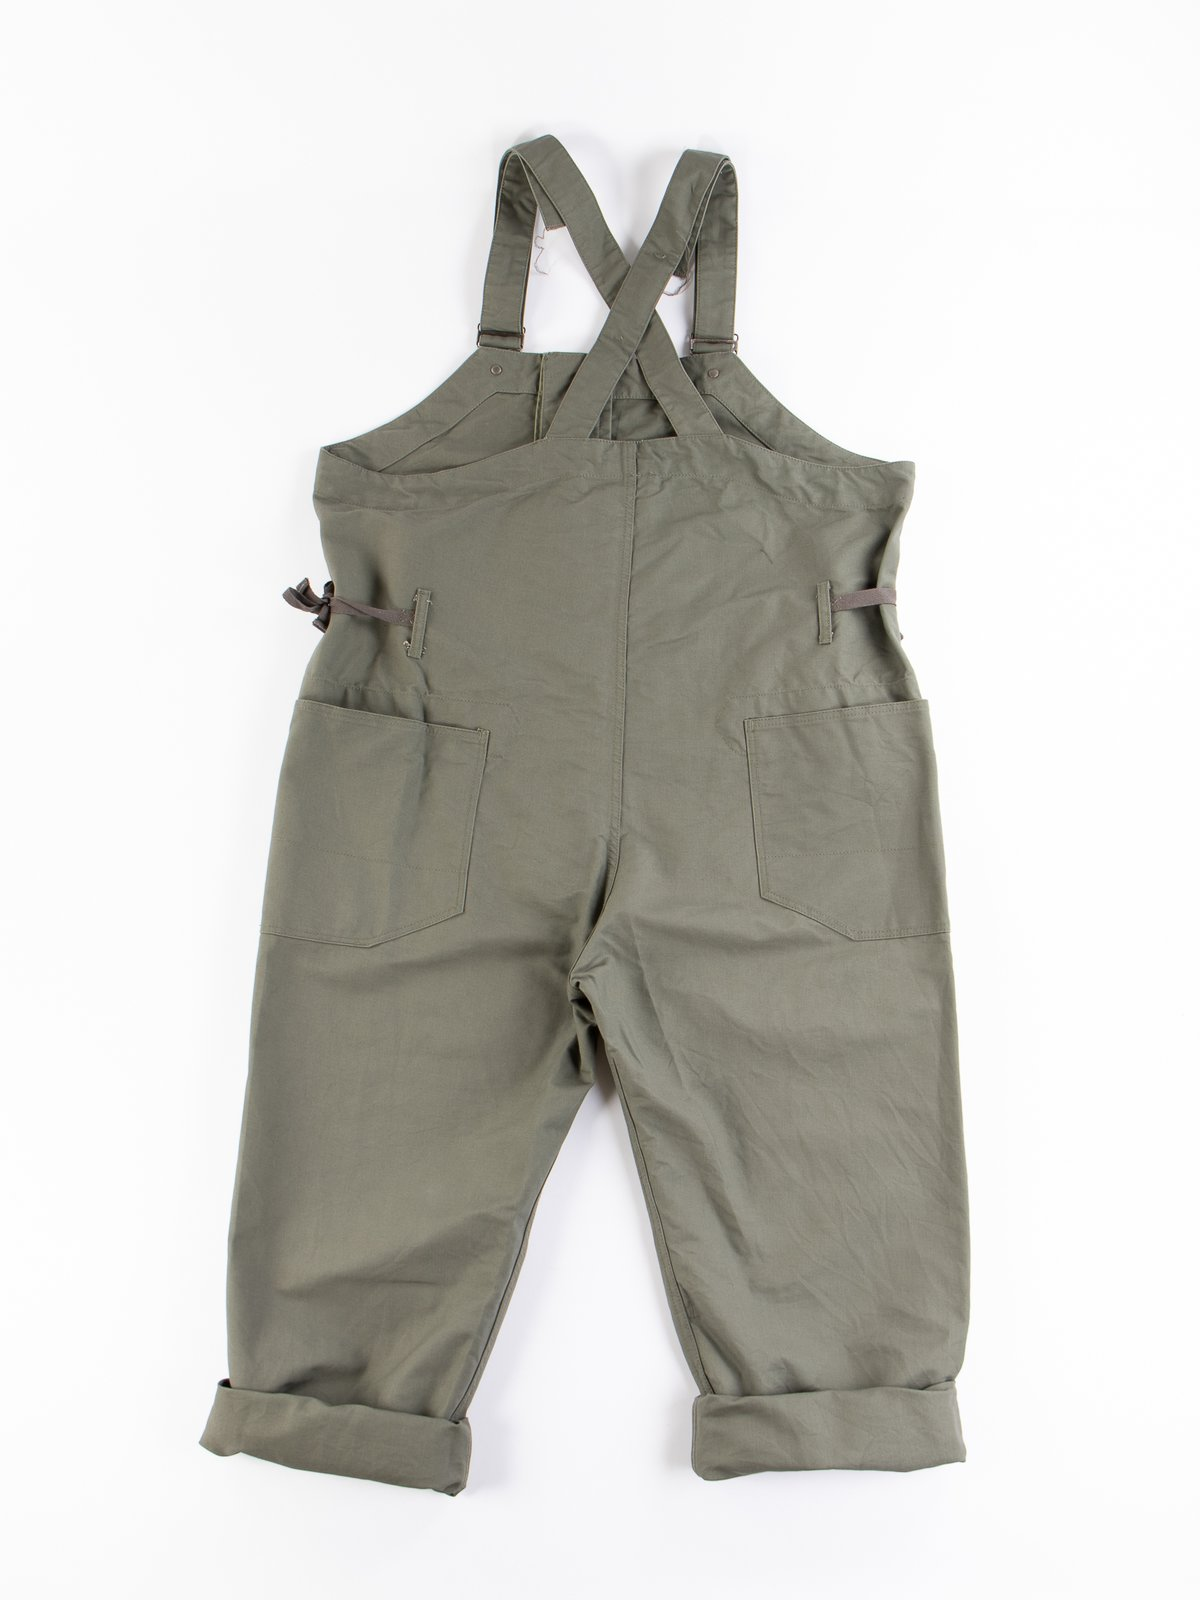 Olive Cotton Double Cloth Overalls - Image 6